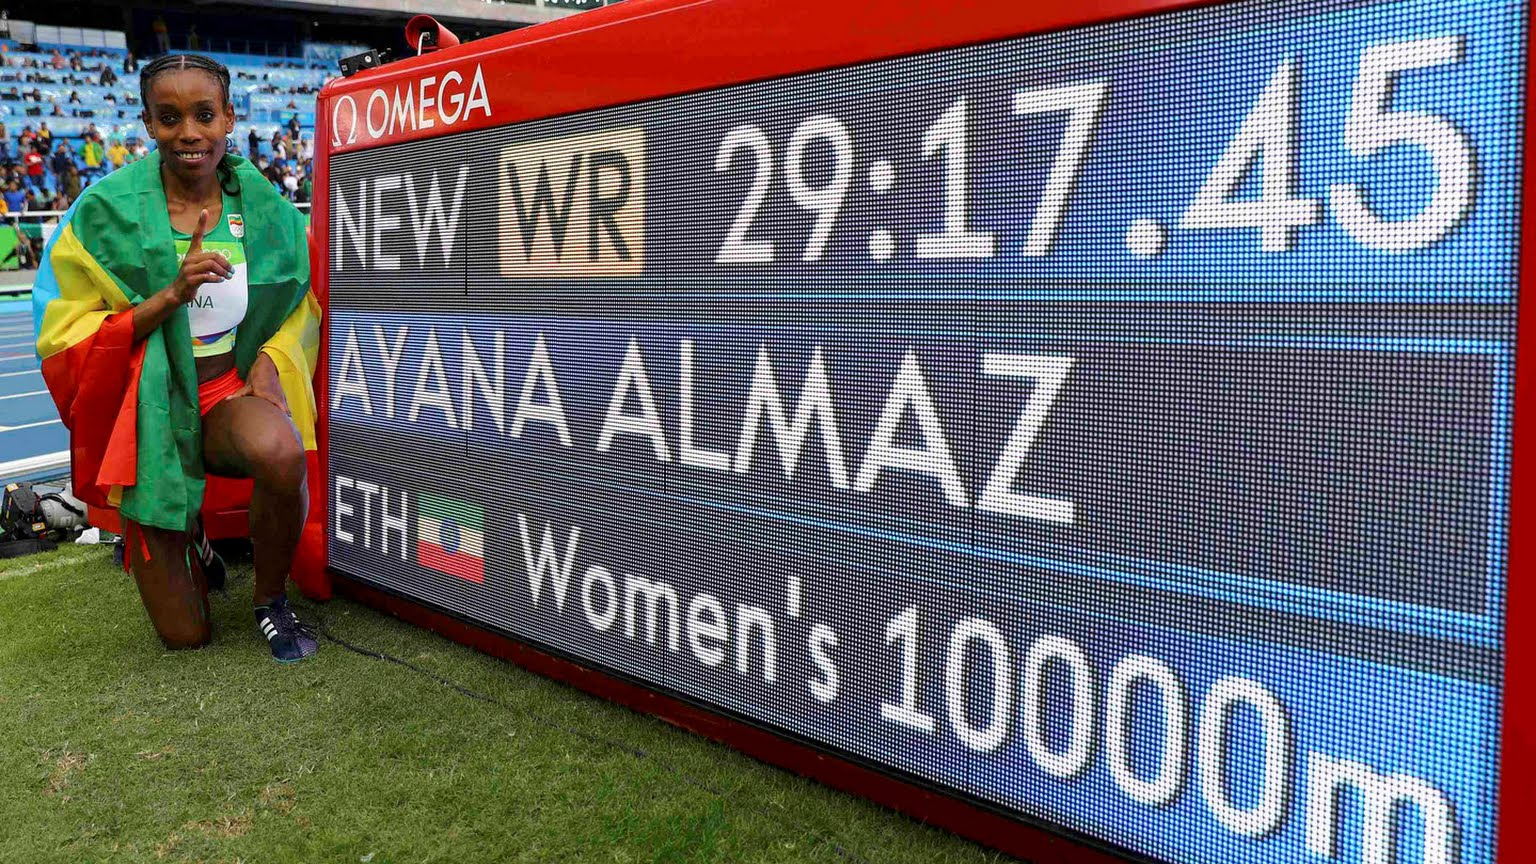 Ethiopia's Almaz Ayana, one of the African winners at the Rio Olympics